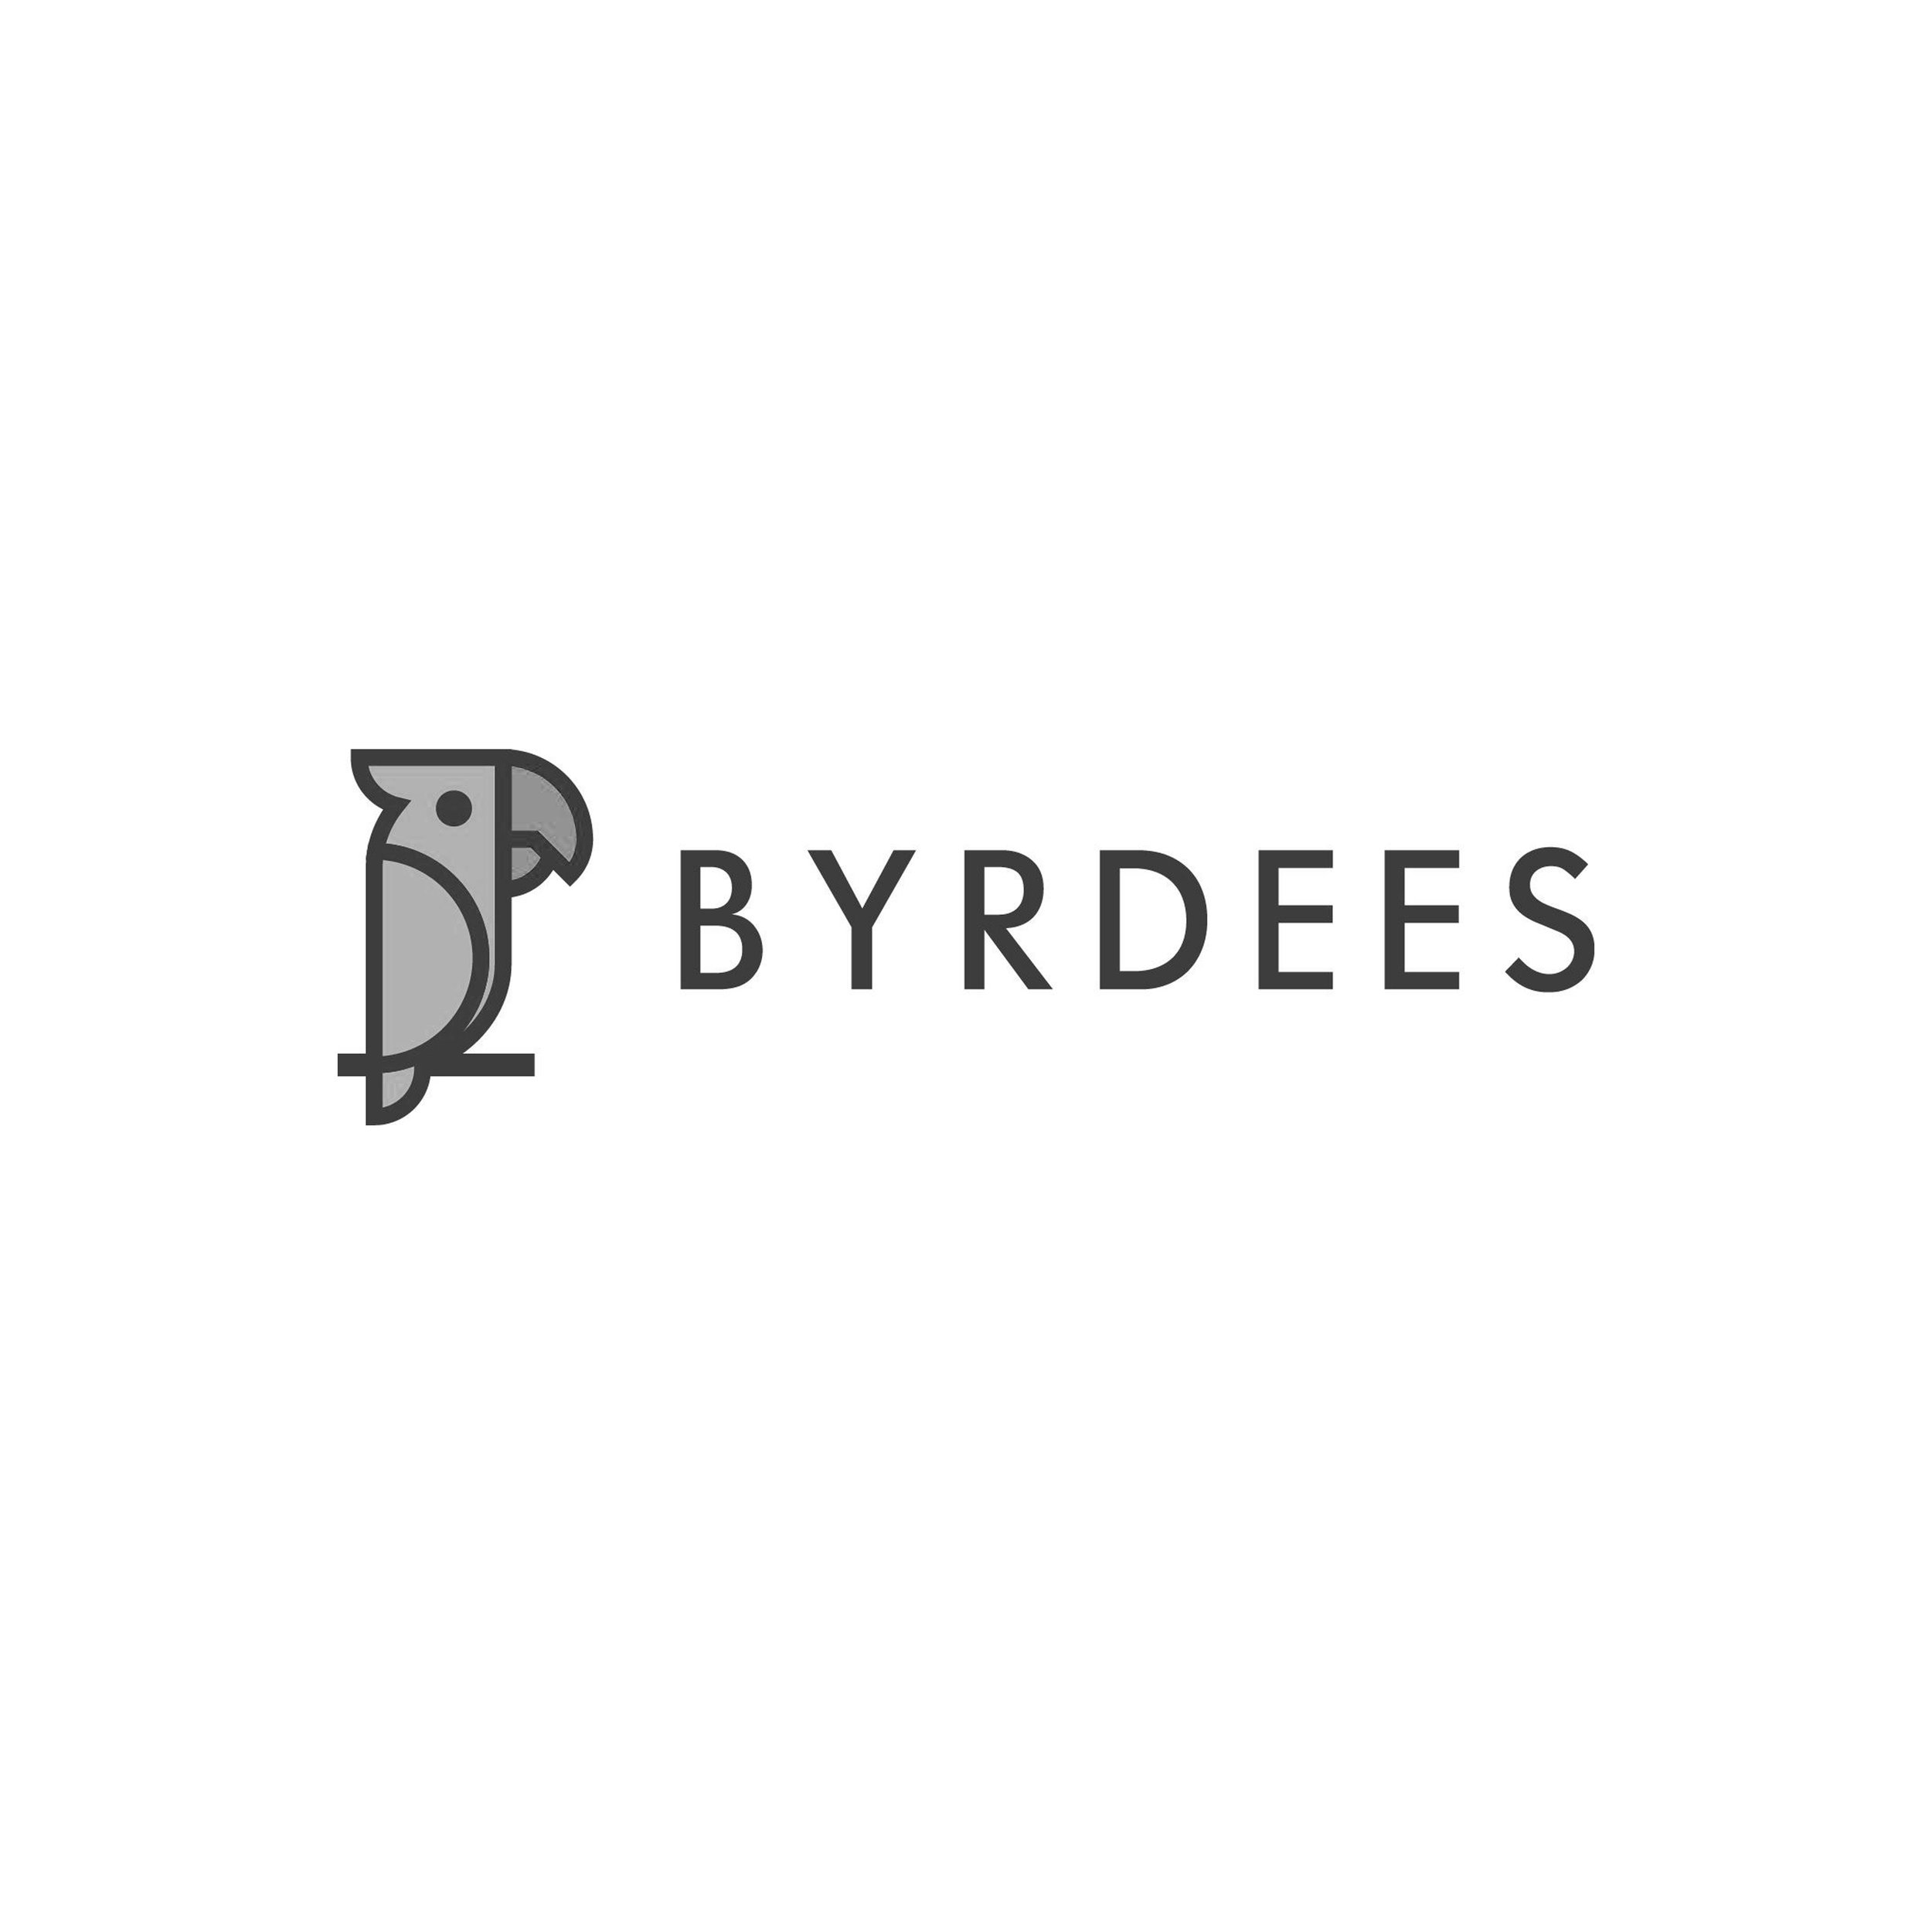 Copy of Apparel brand Byrdees